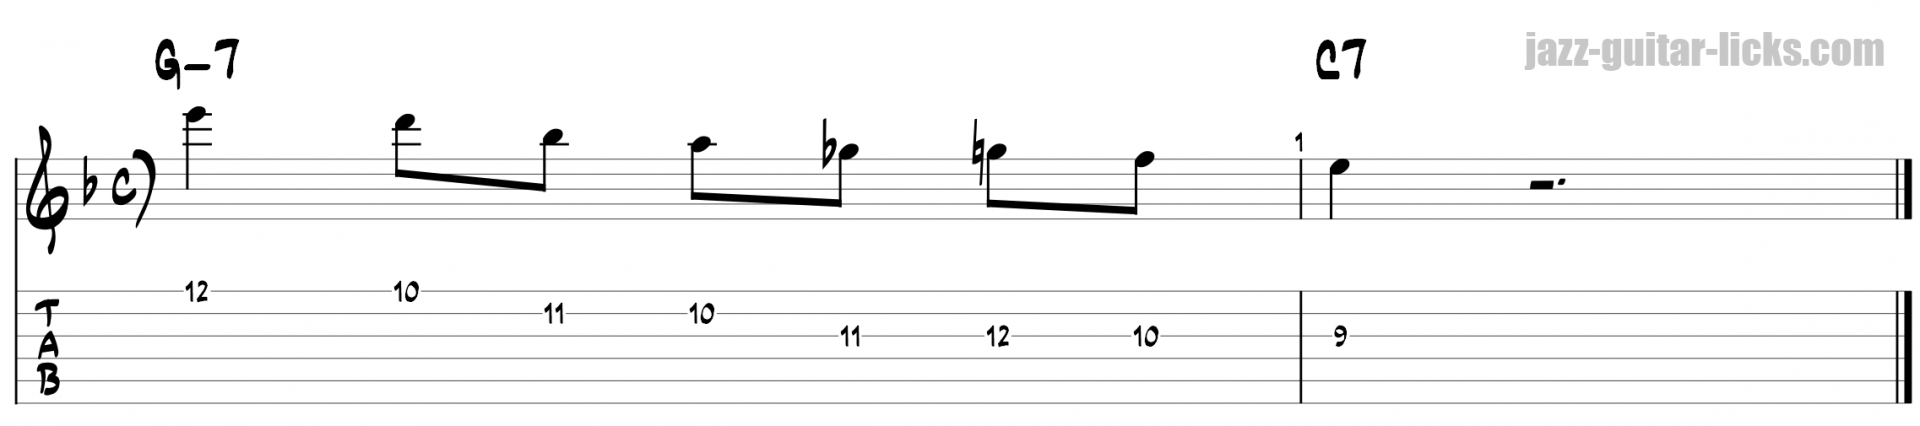 Miles davis guitar transcription